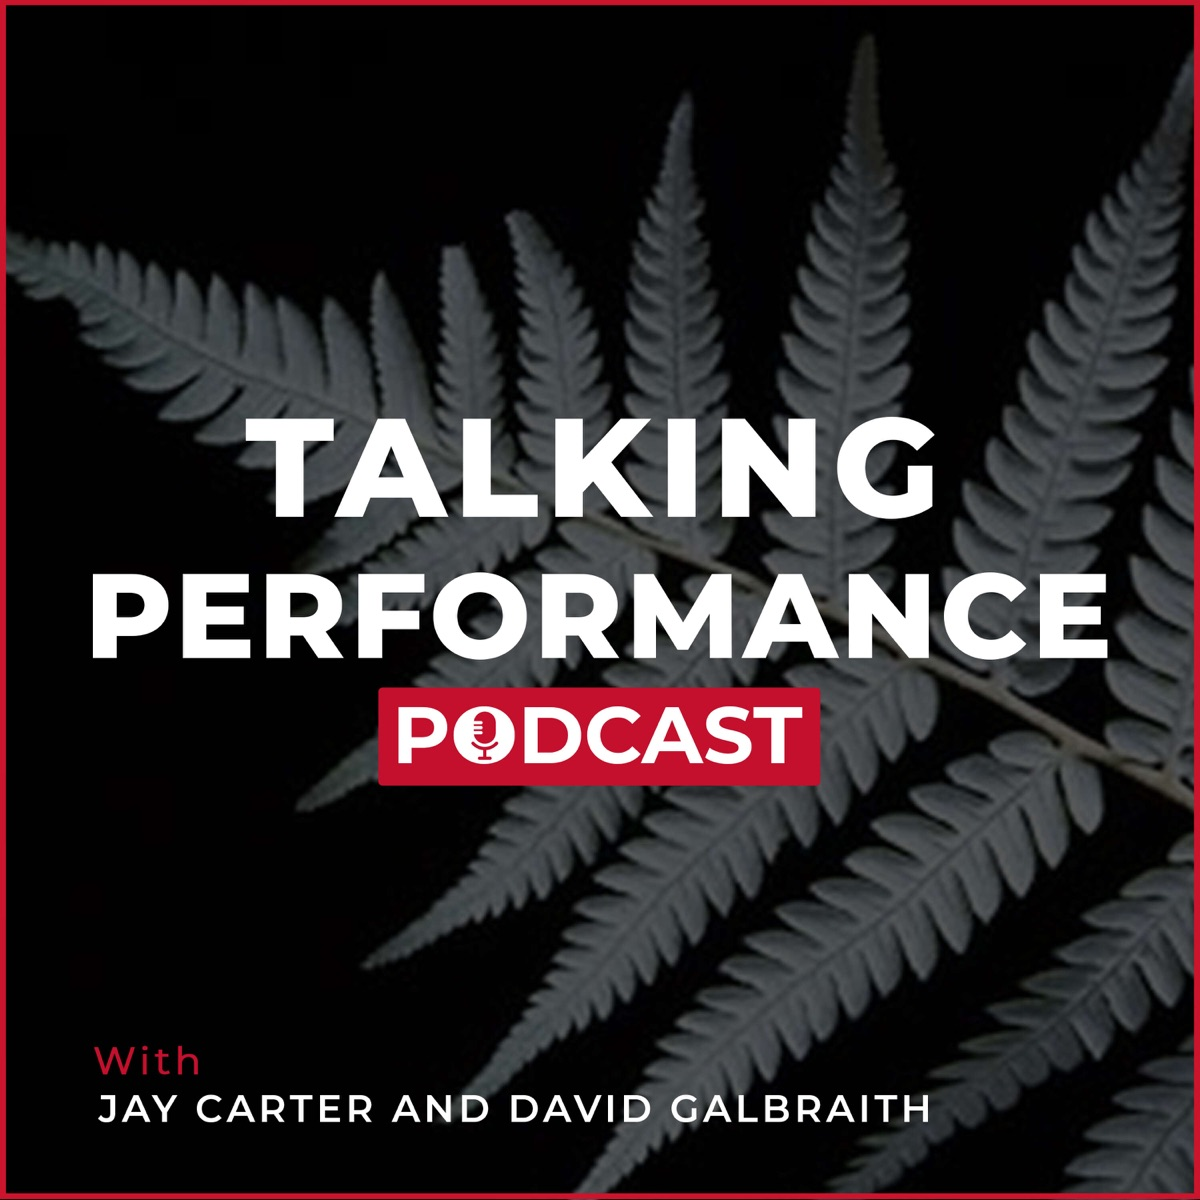 Talking Performance Episode 17 with Special Tony Philp